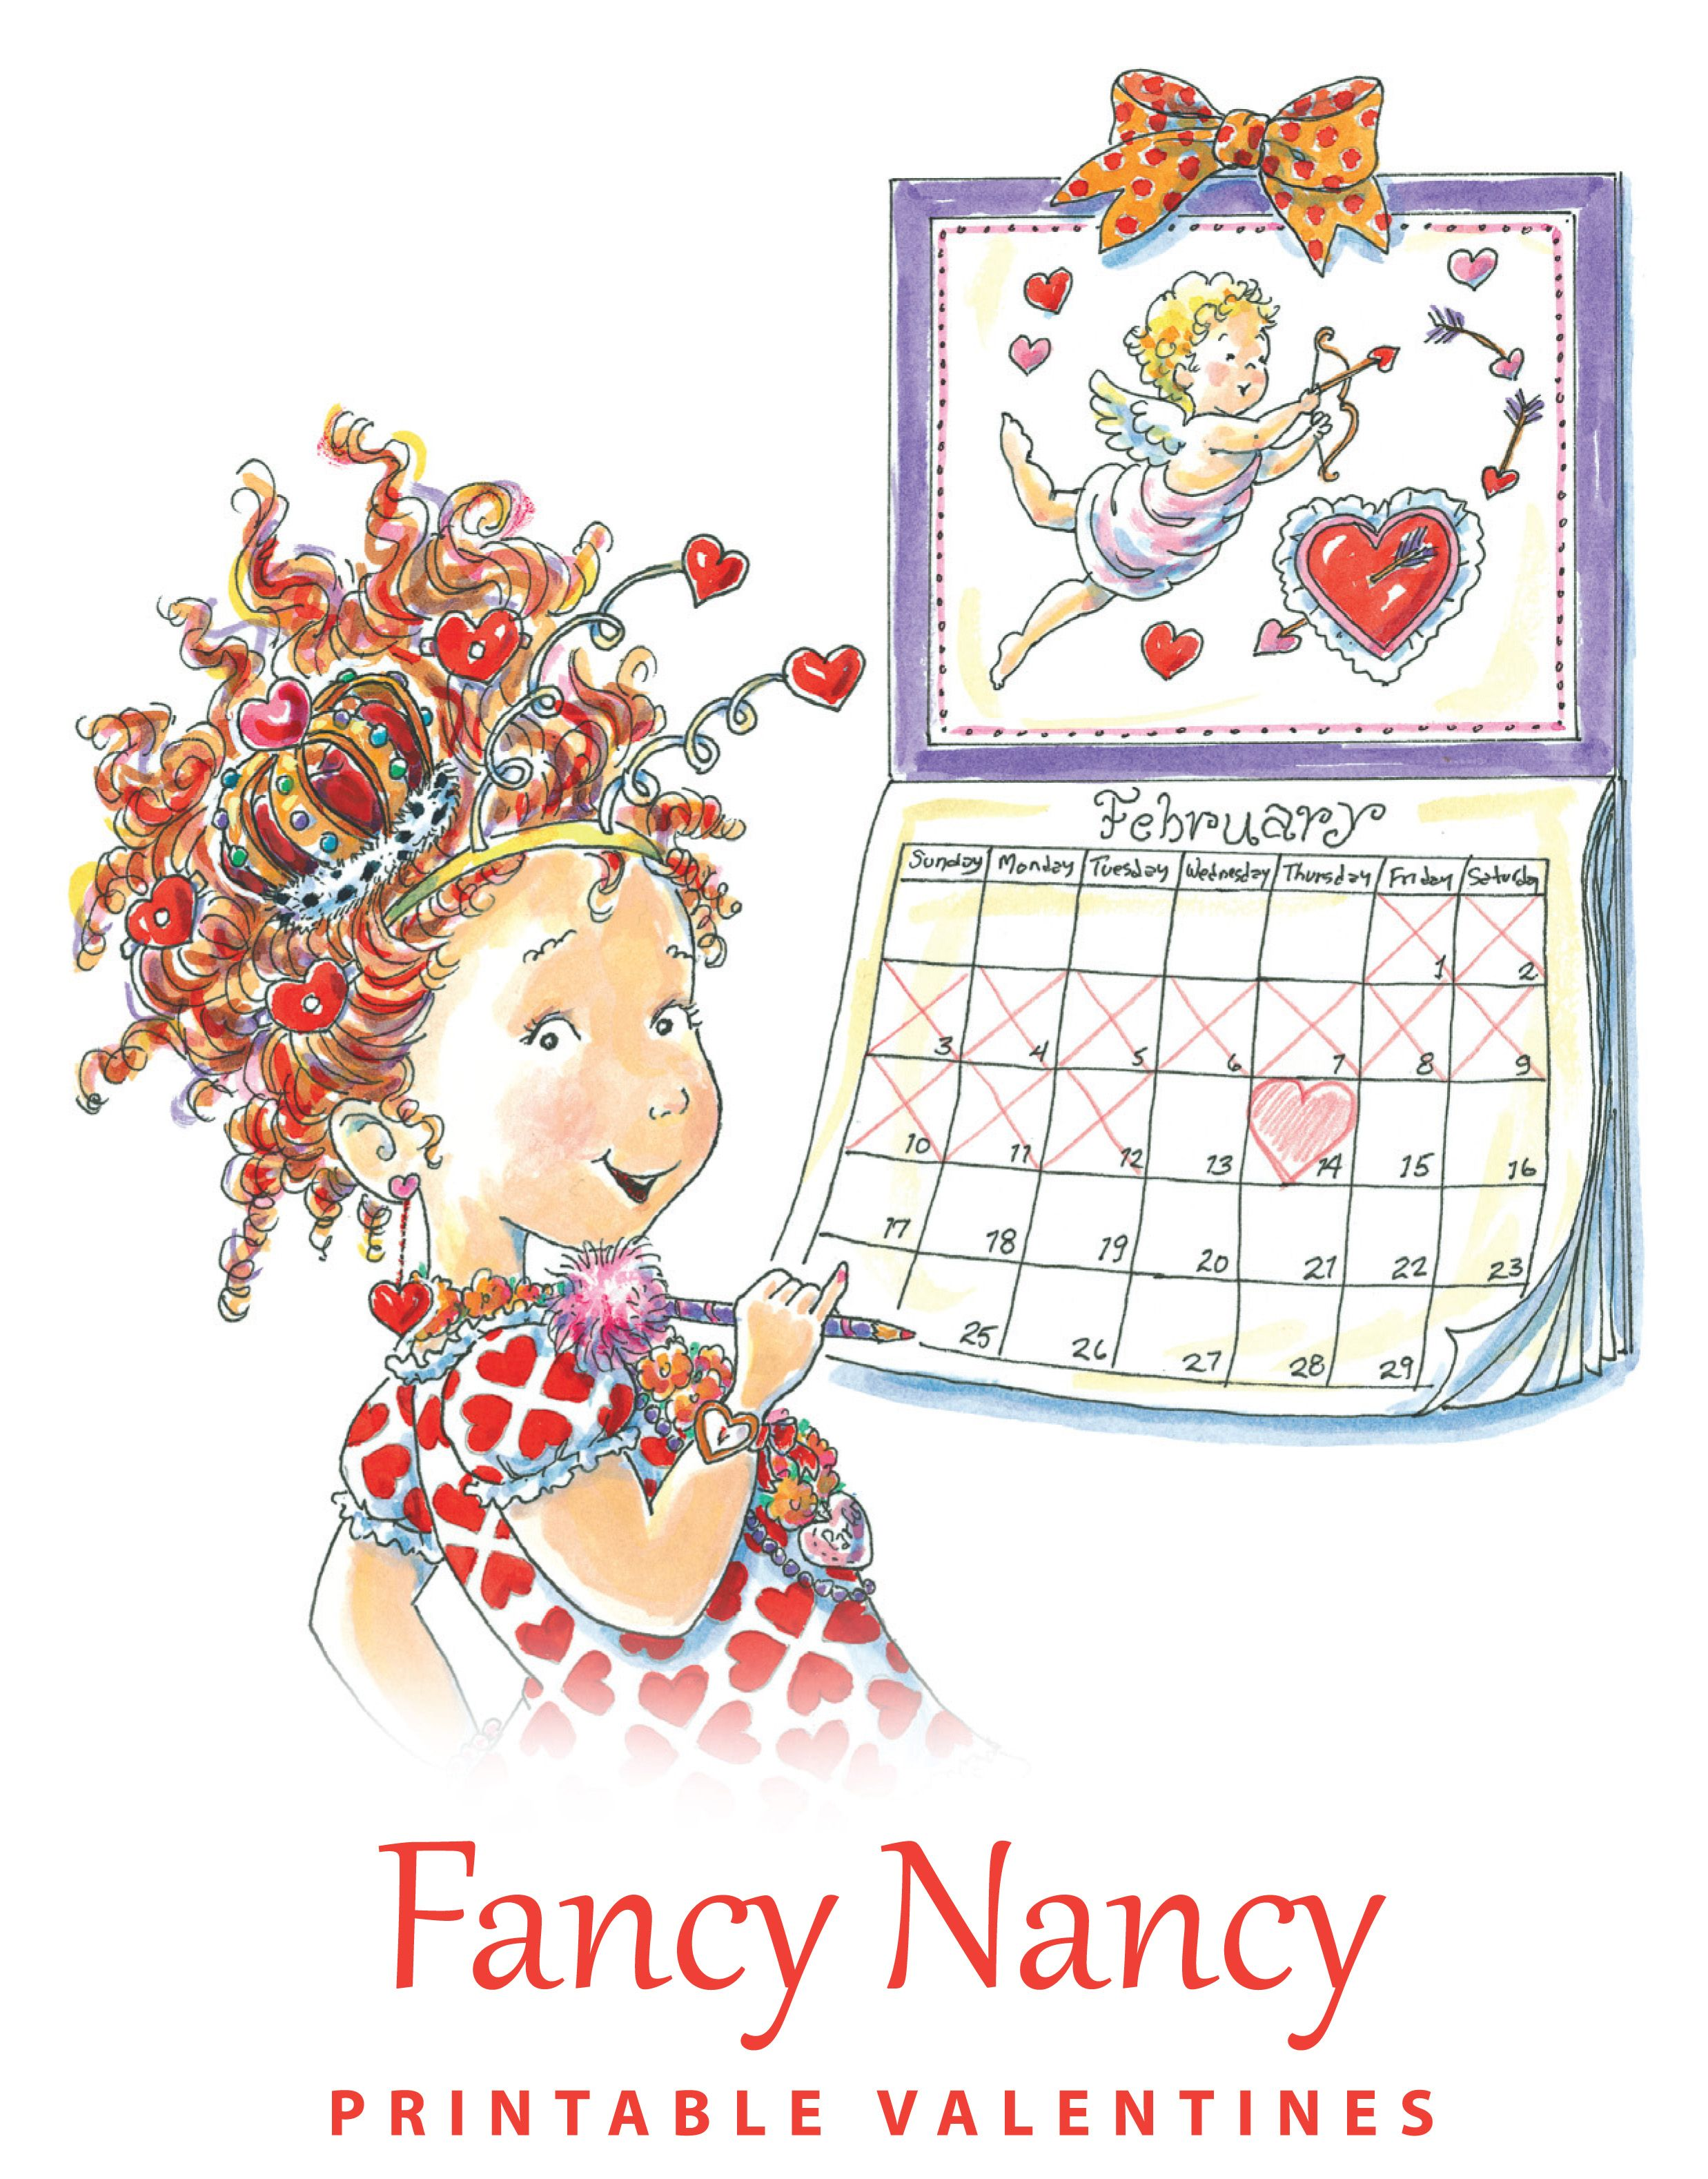 medium resolution of printable valentine s day cards featuring fancy nancy click the pin to download the free cards